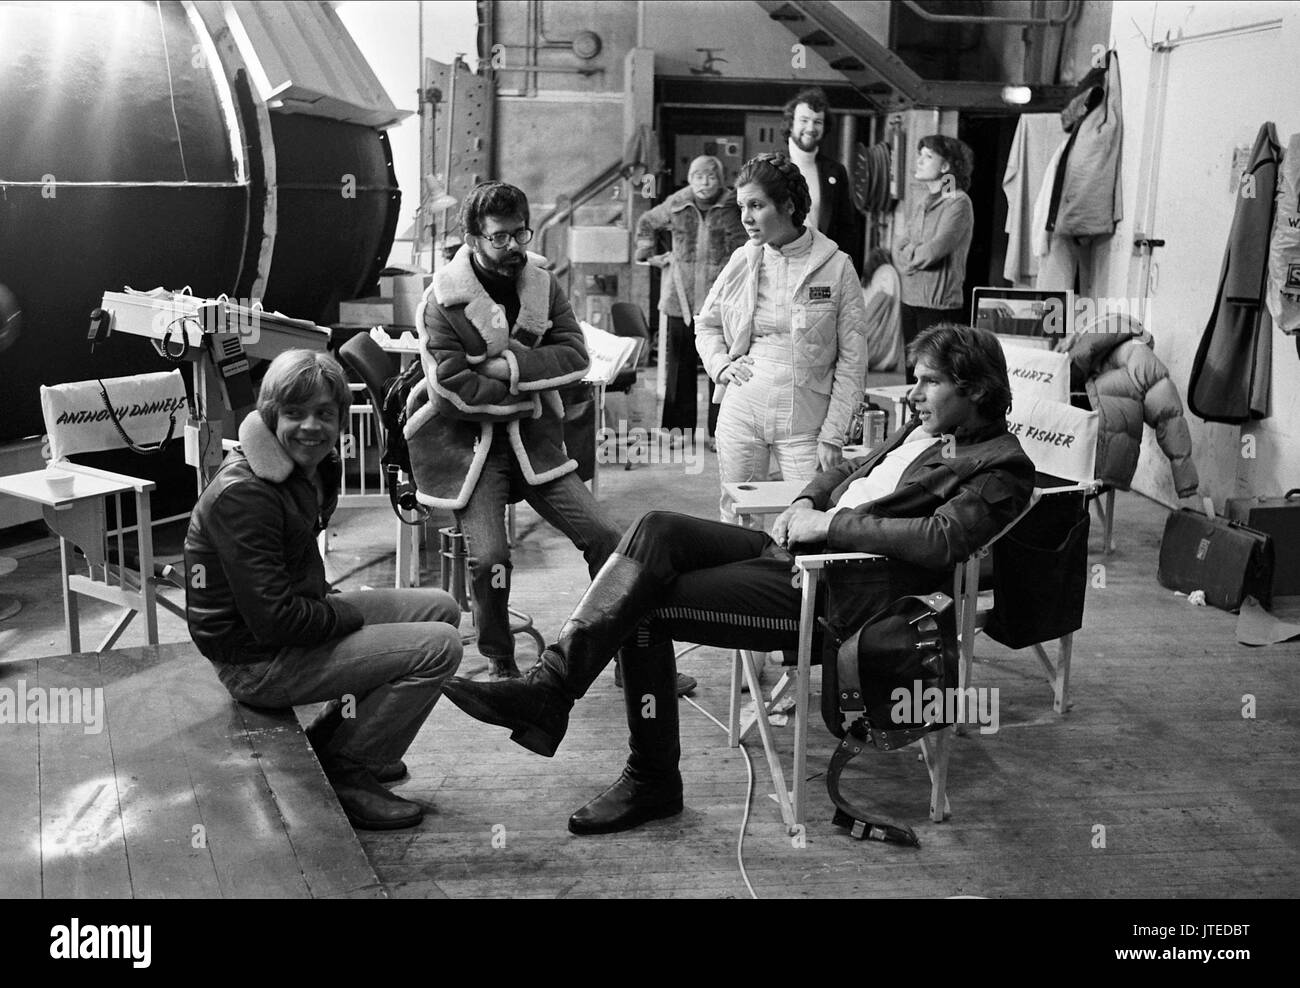 MARK HAMILL, GEORGE LUCAS, CARRIE FISHER, HARRISON FORD, STAR WARS: EPISODE V - THE EMPIRE STRIKES BACK, 1980 - Stock Image